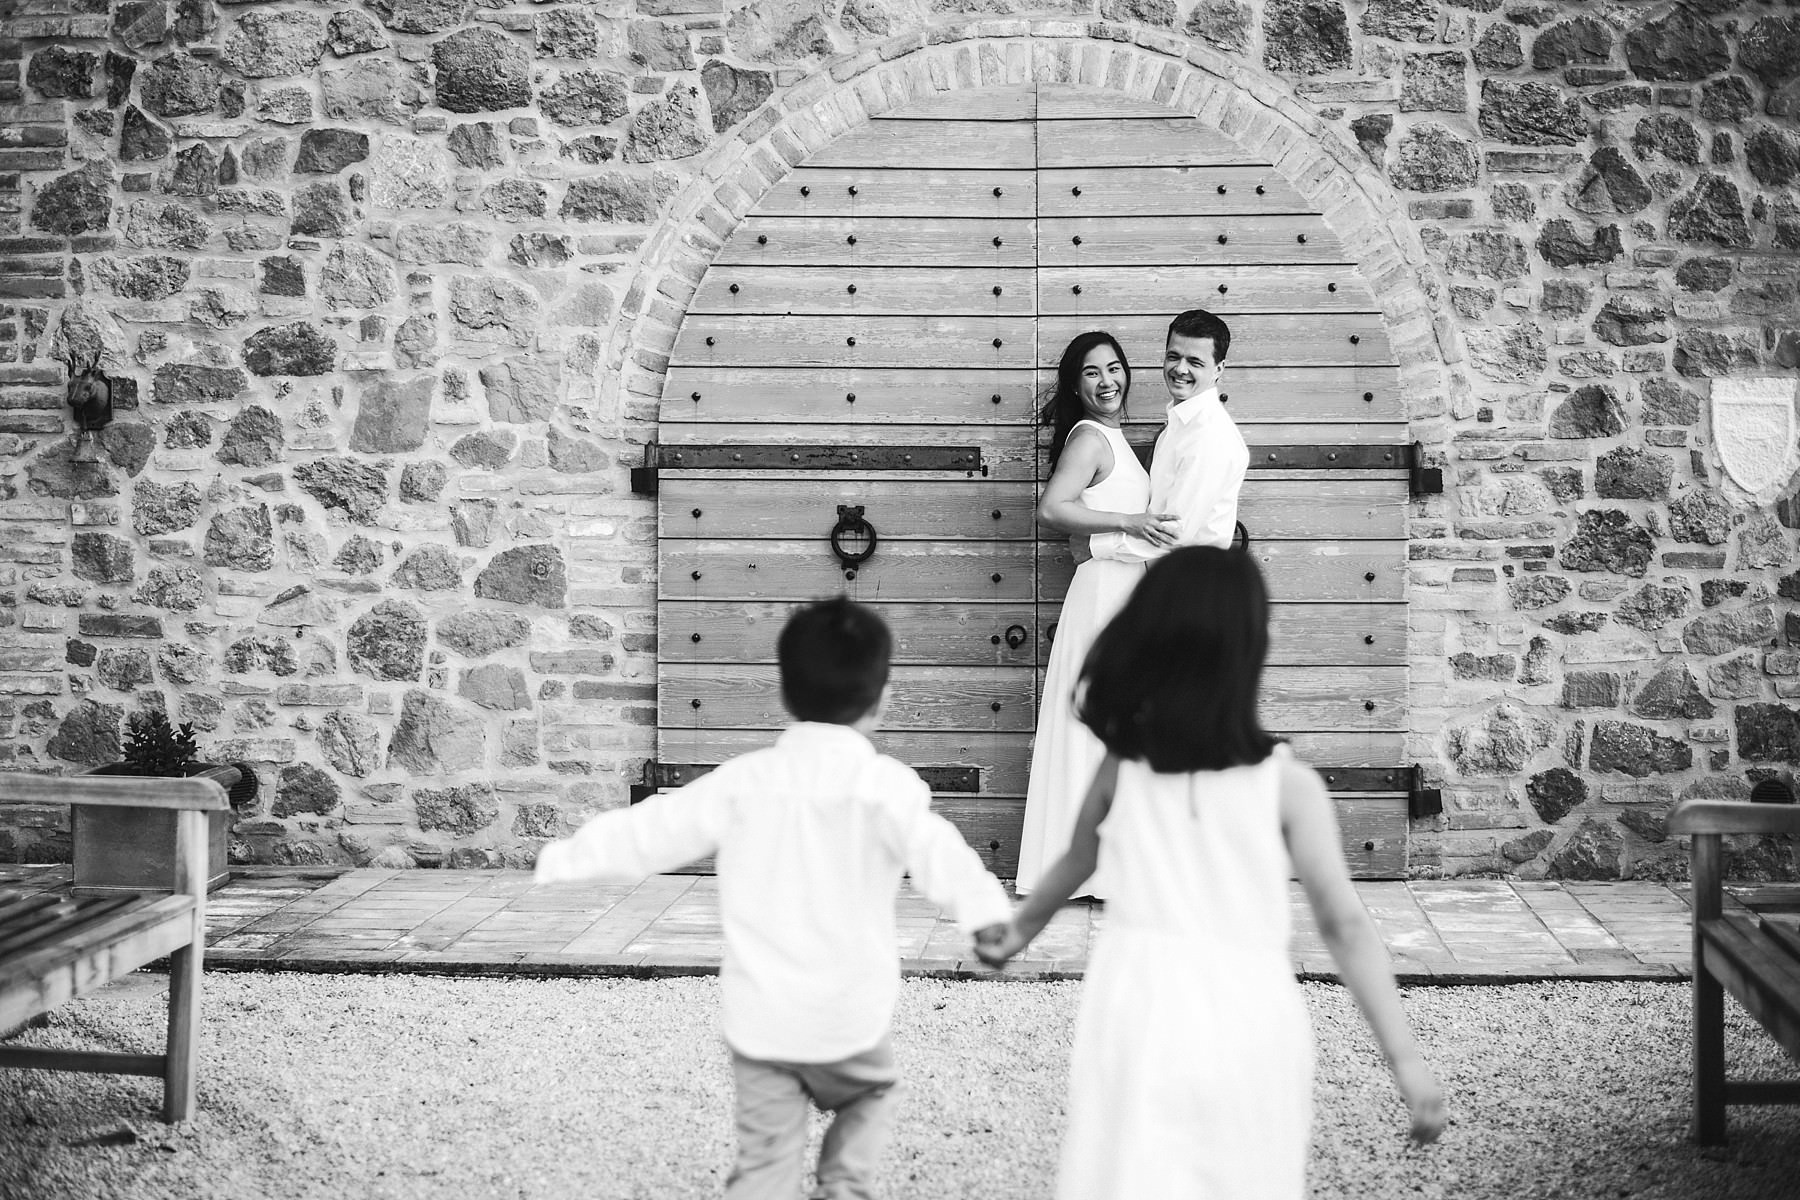 Lovely frame with a family during a summer vacation photo shoot in Tuscany near the town of Iano